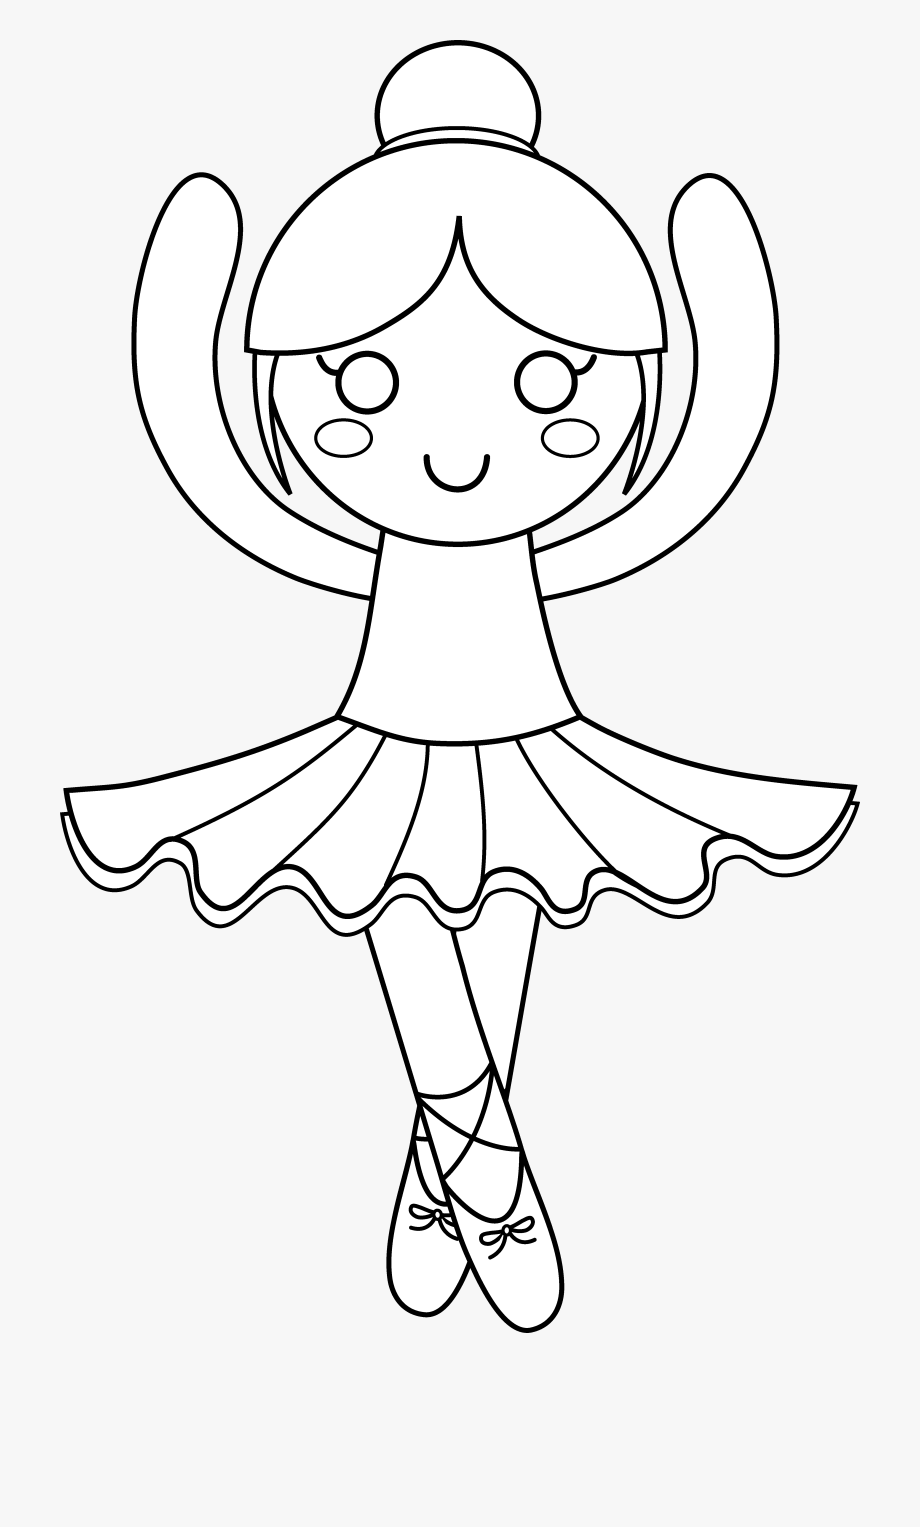 Ballet cute coloring pages. Ballerina clipart outline